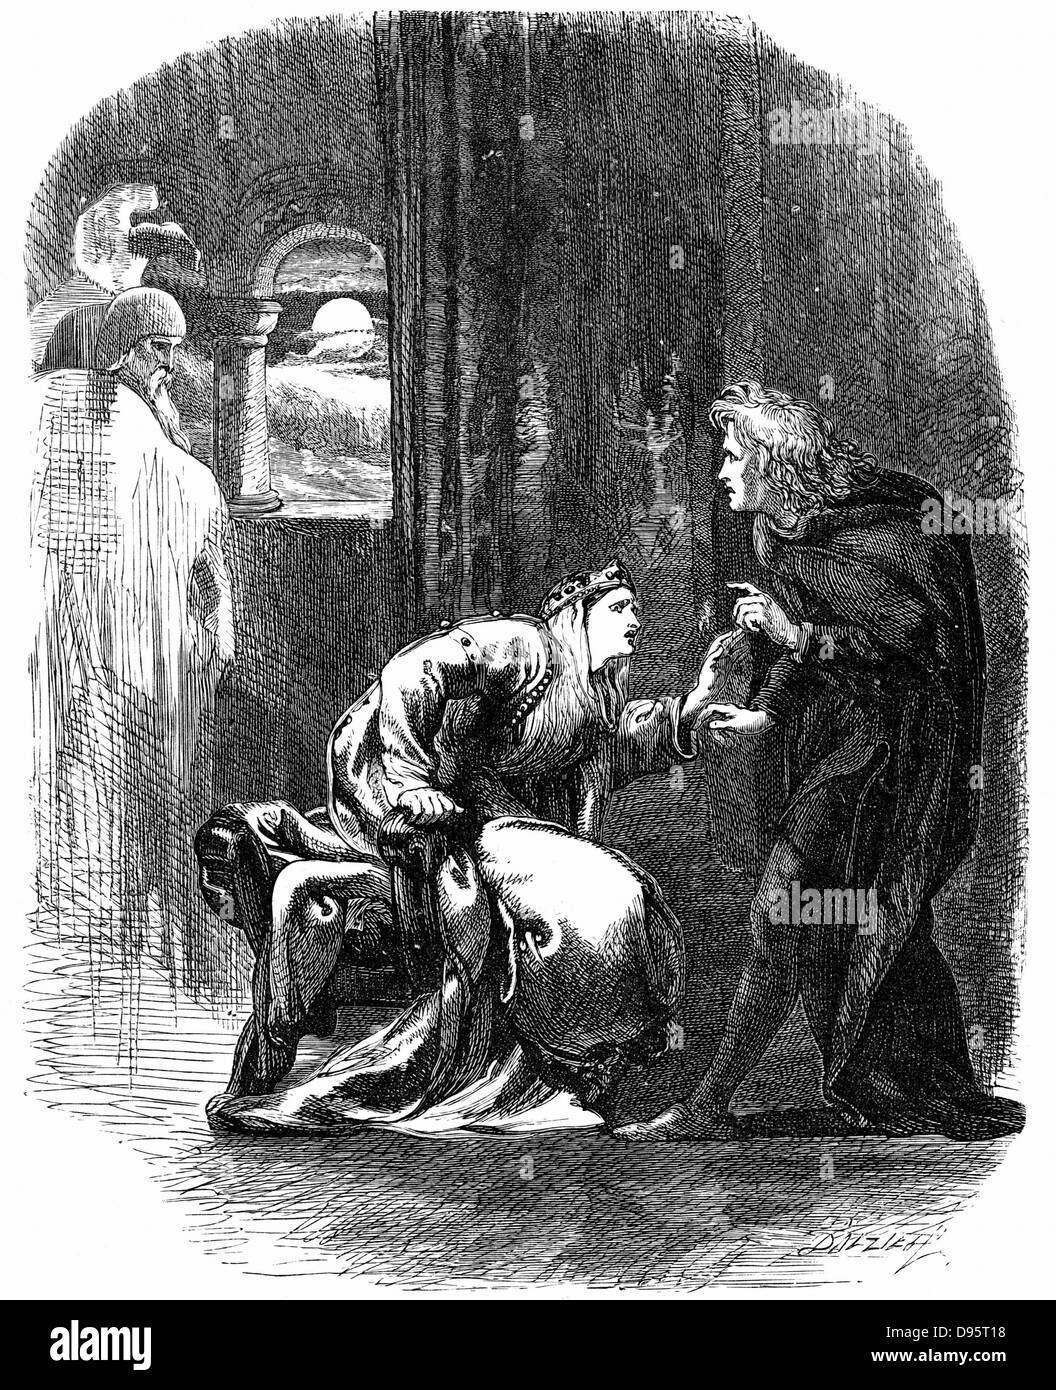 Shakespeare 'Hamlet' Act 3 Sc 4. Ghost of Hamlet's father appearing to him to remind him that he must - Stock Image